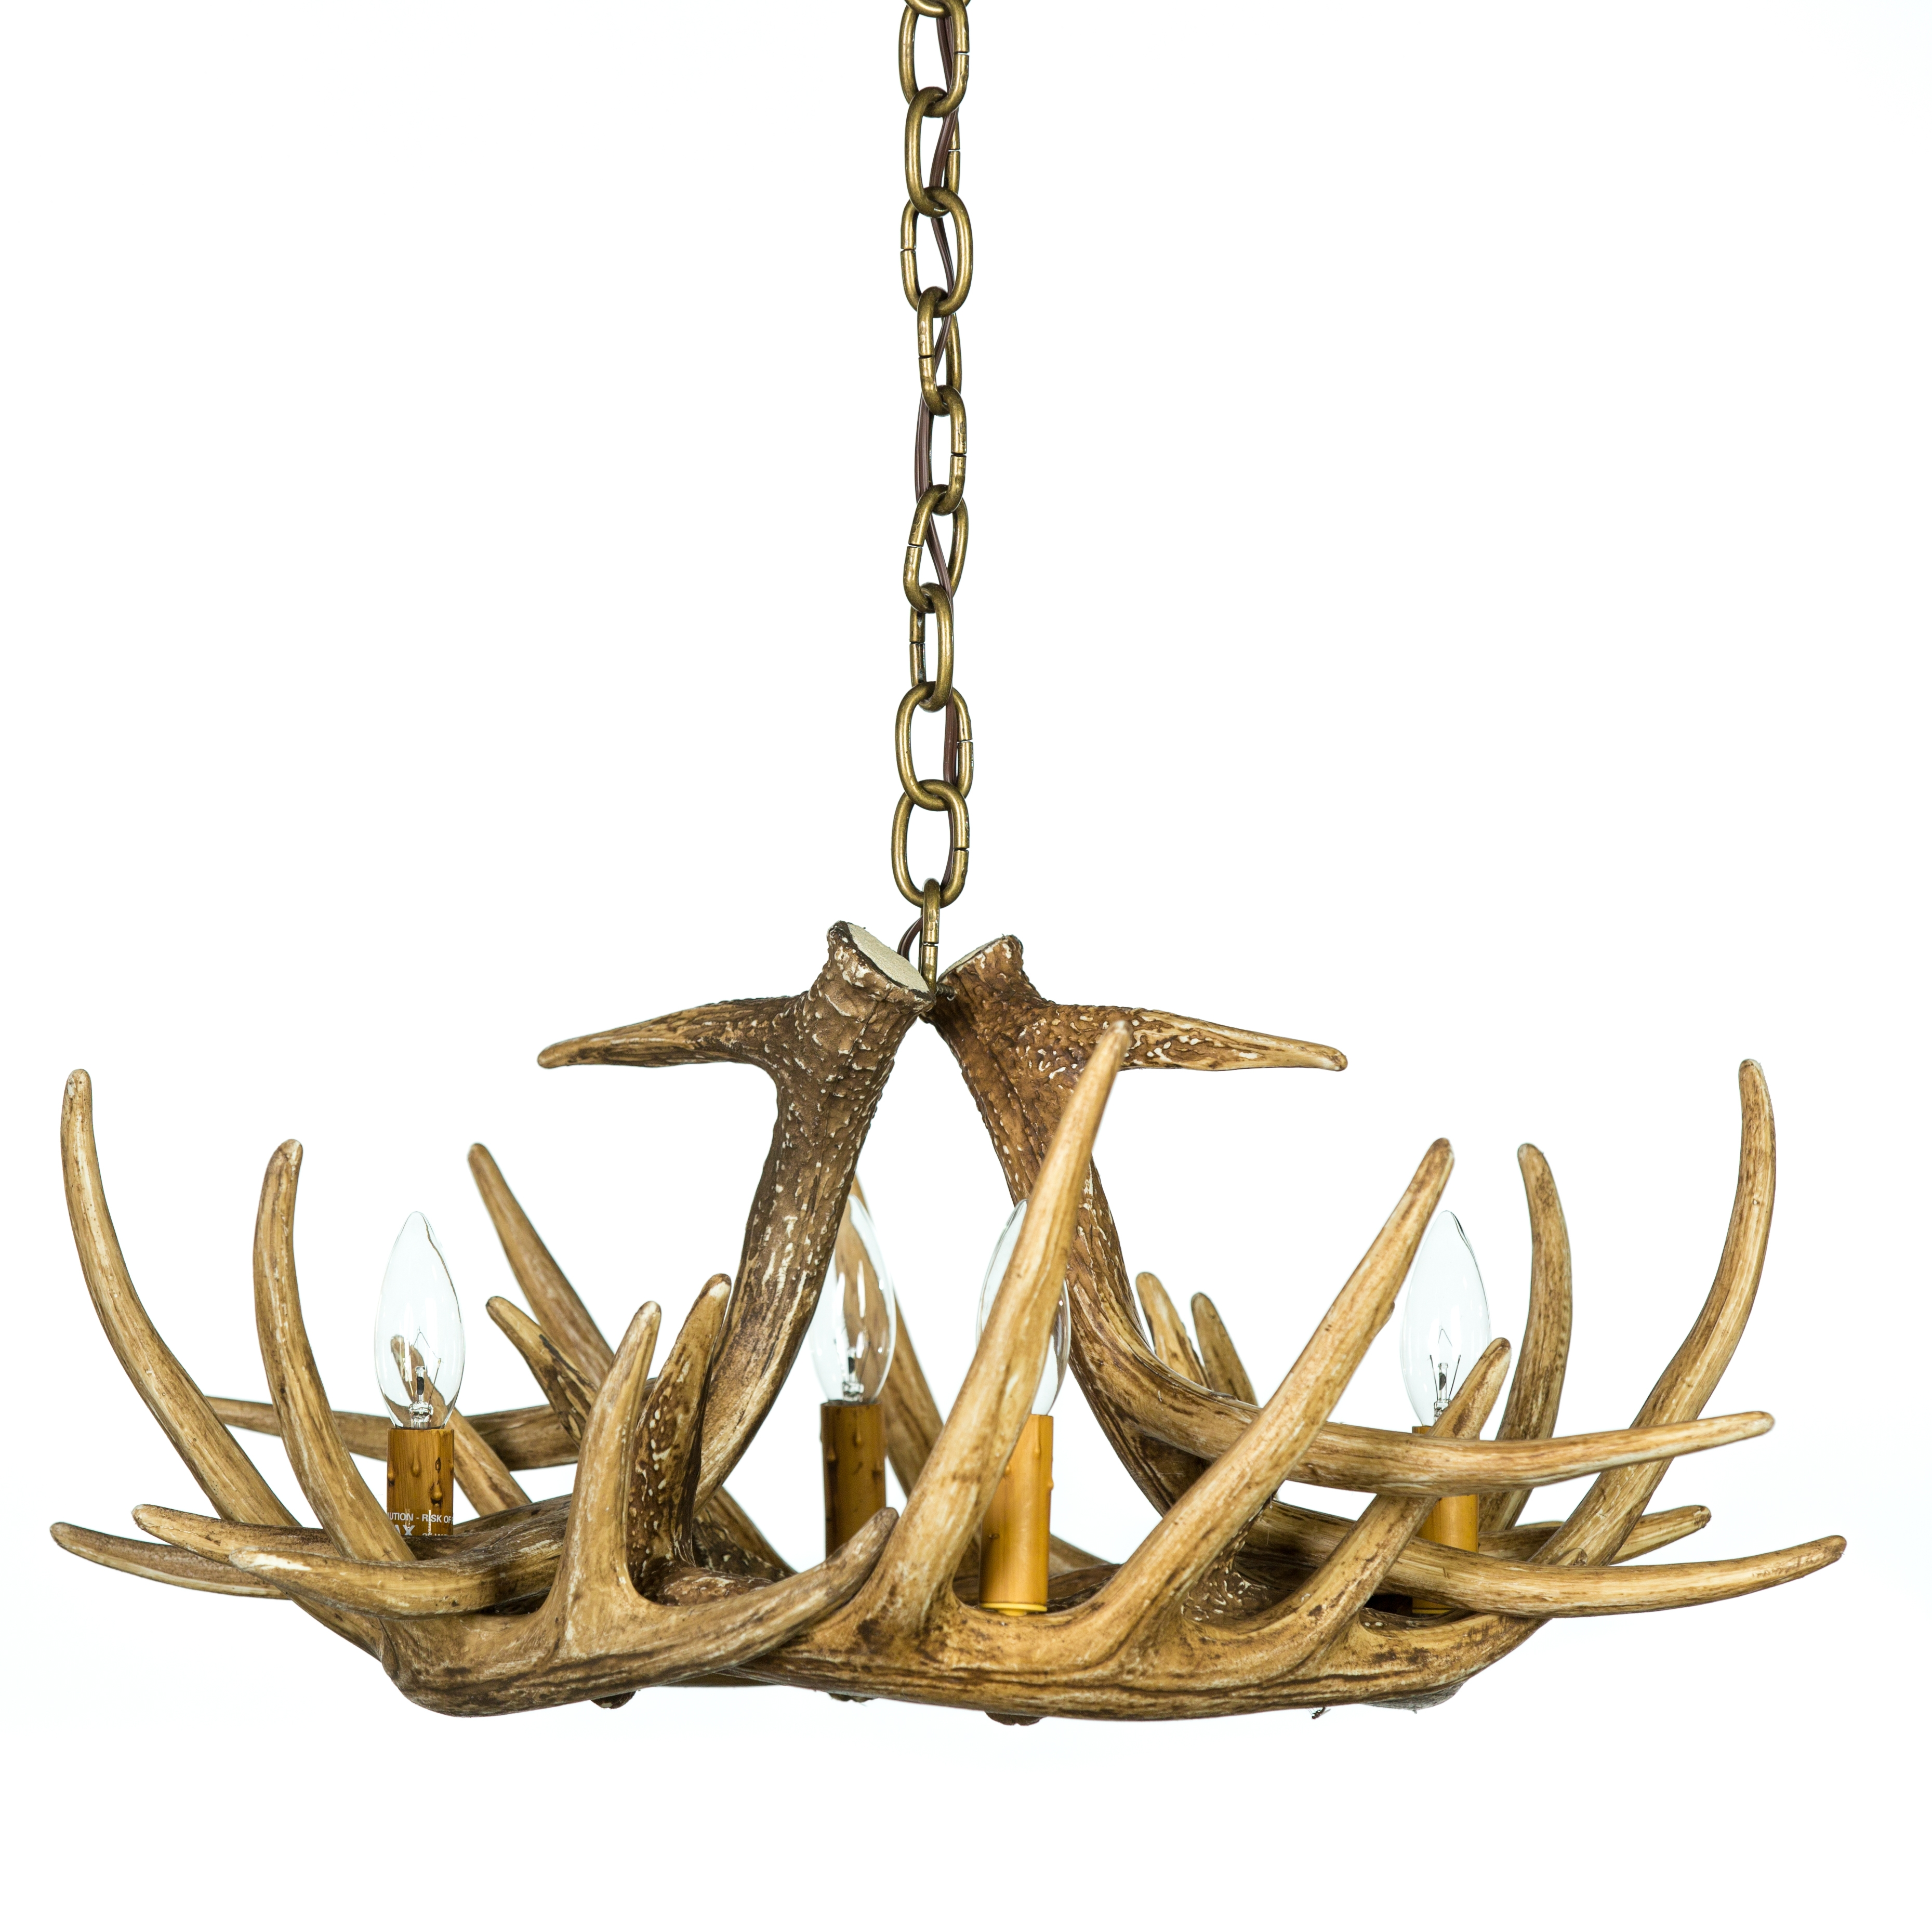 Antler Chandeliers Cast Horn Designs Within Antler Chandeliers (View 9 of 15)